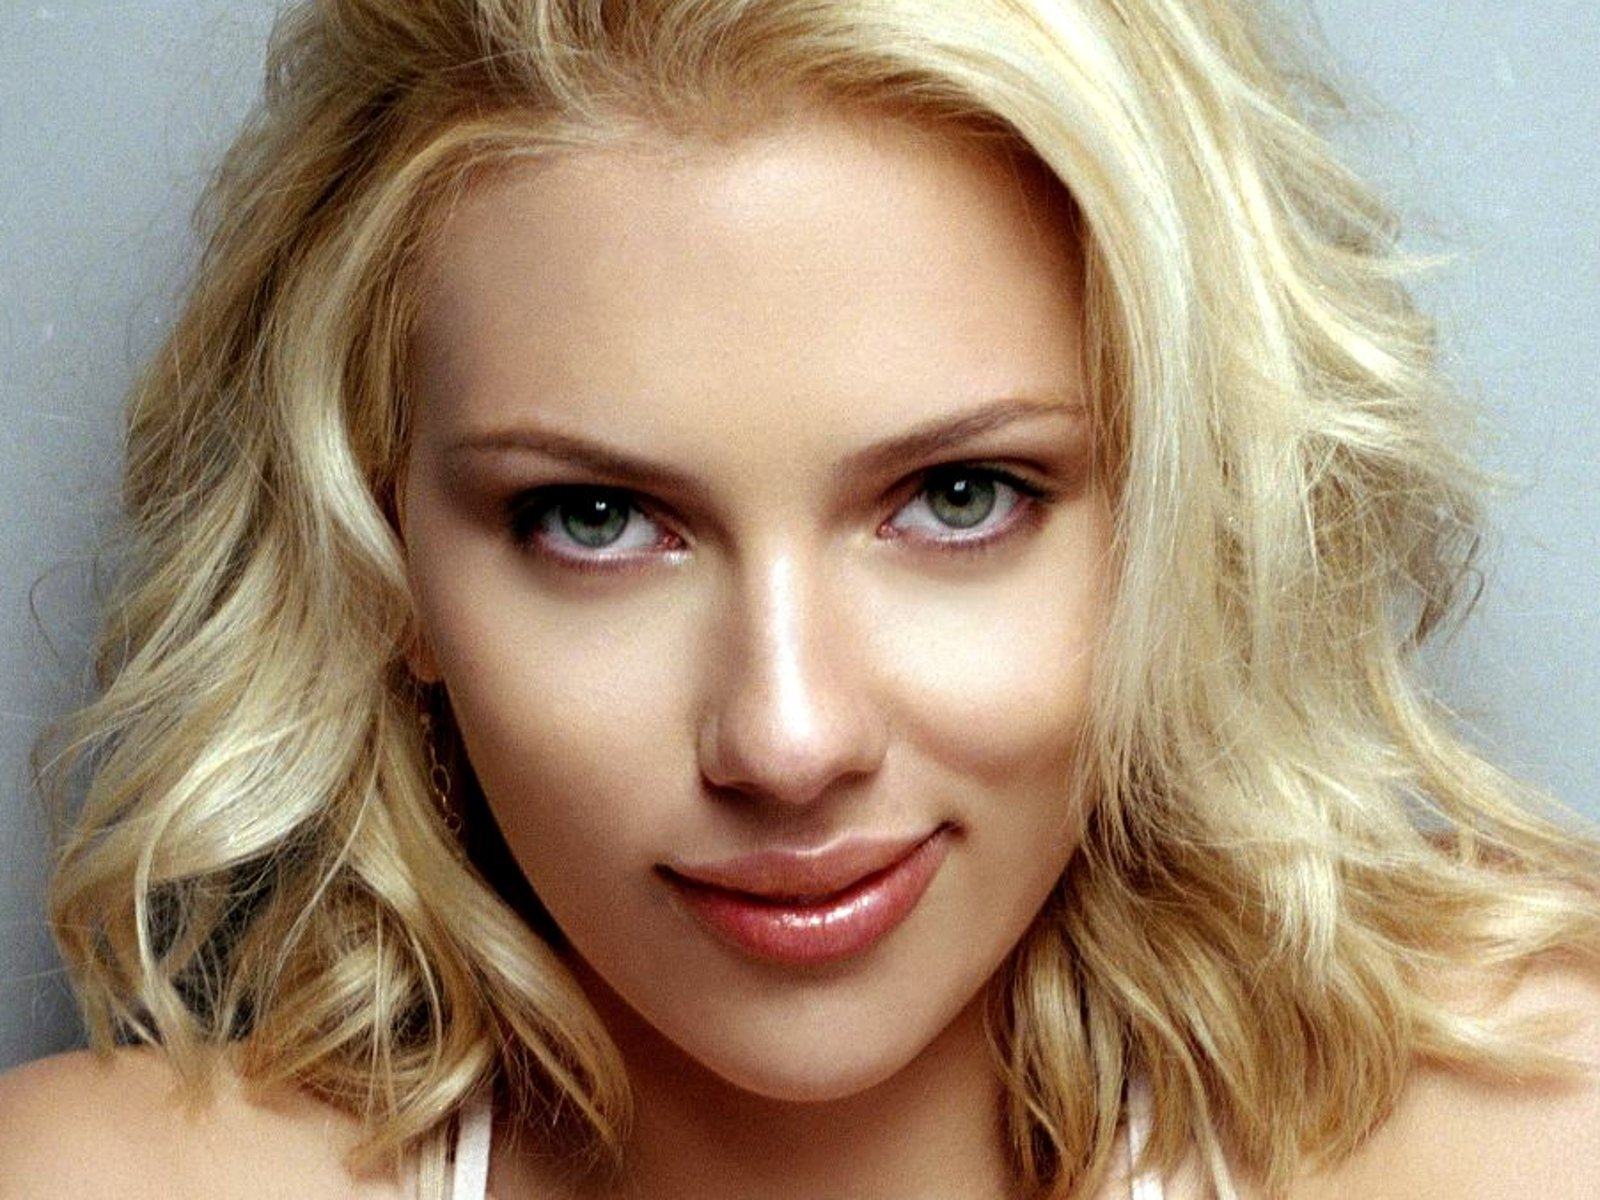 20 hottest performances of scarlett johansson that will rock your night